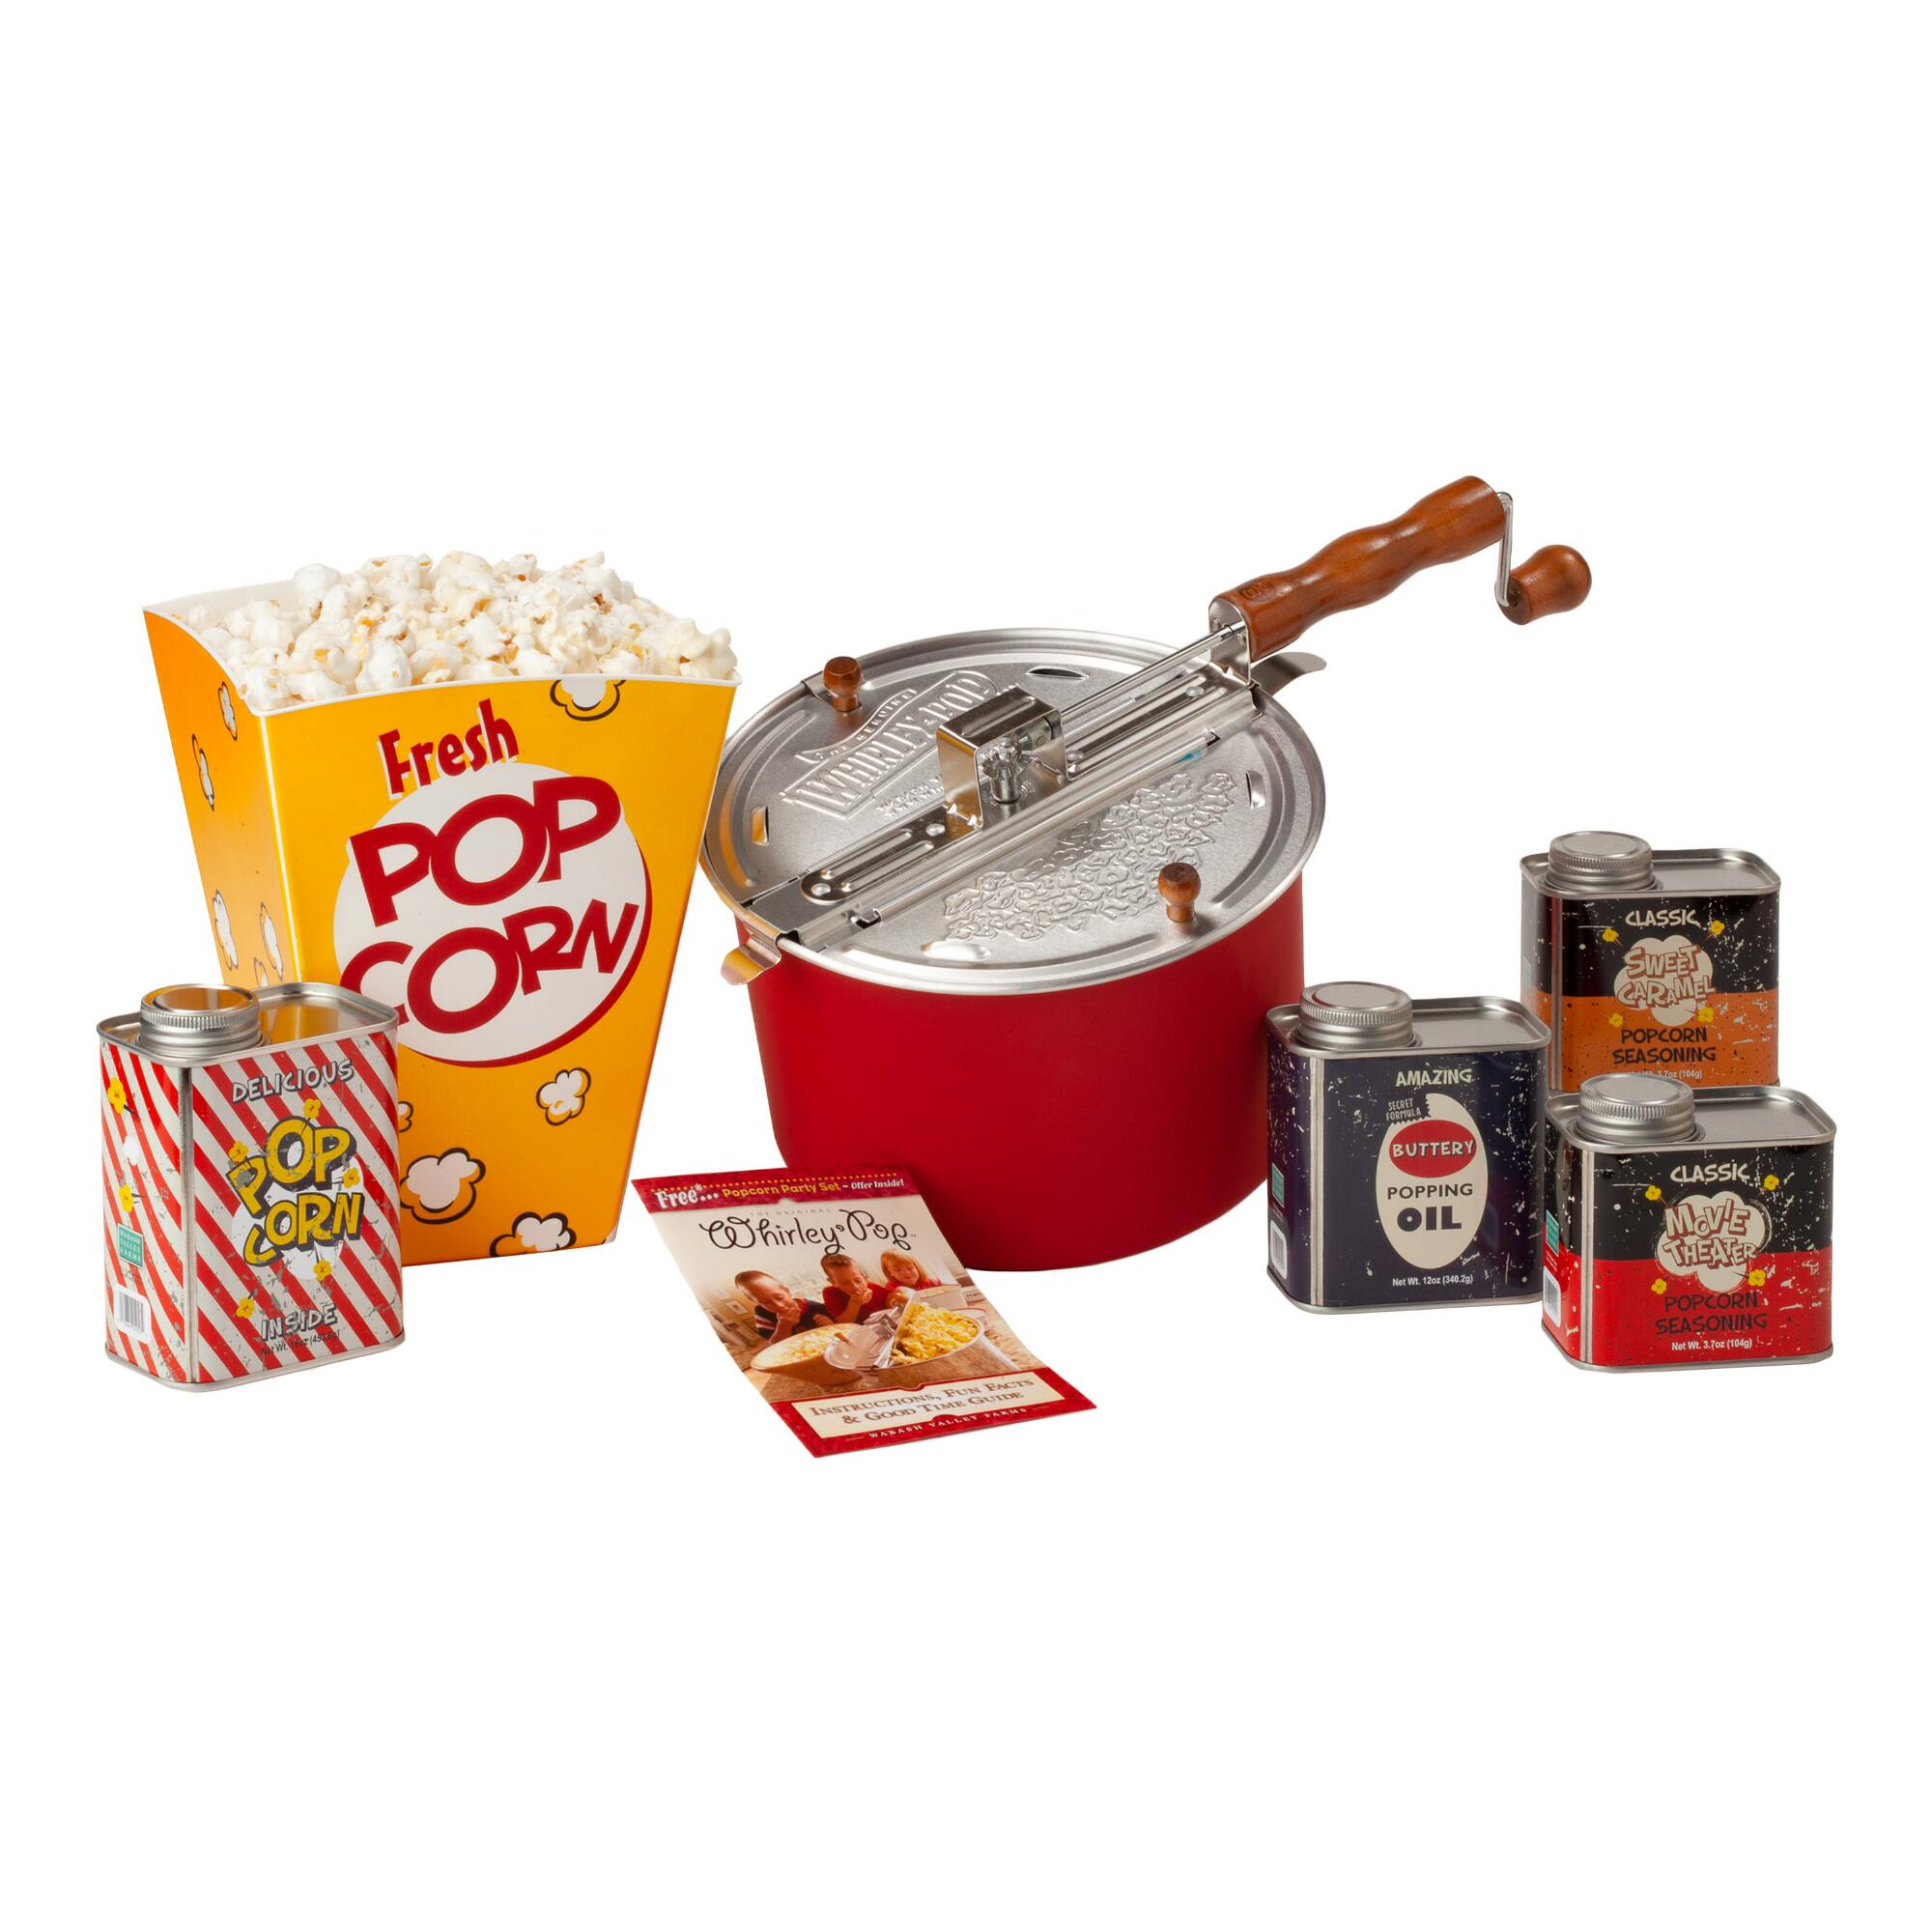 Wabash Valley Farms Whirley Pop Retro Popcorn Gift Set $64.99